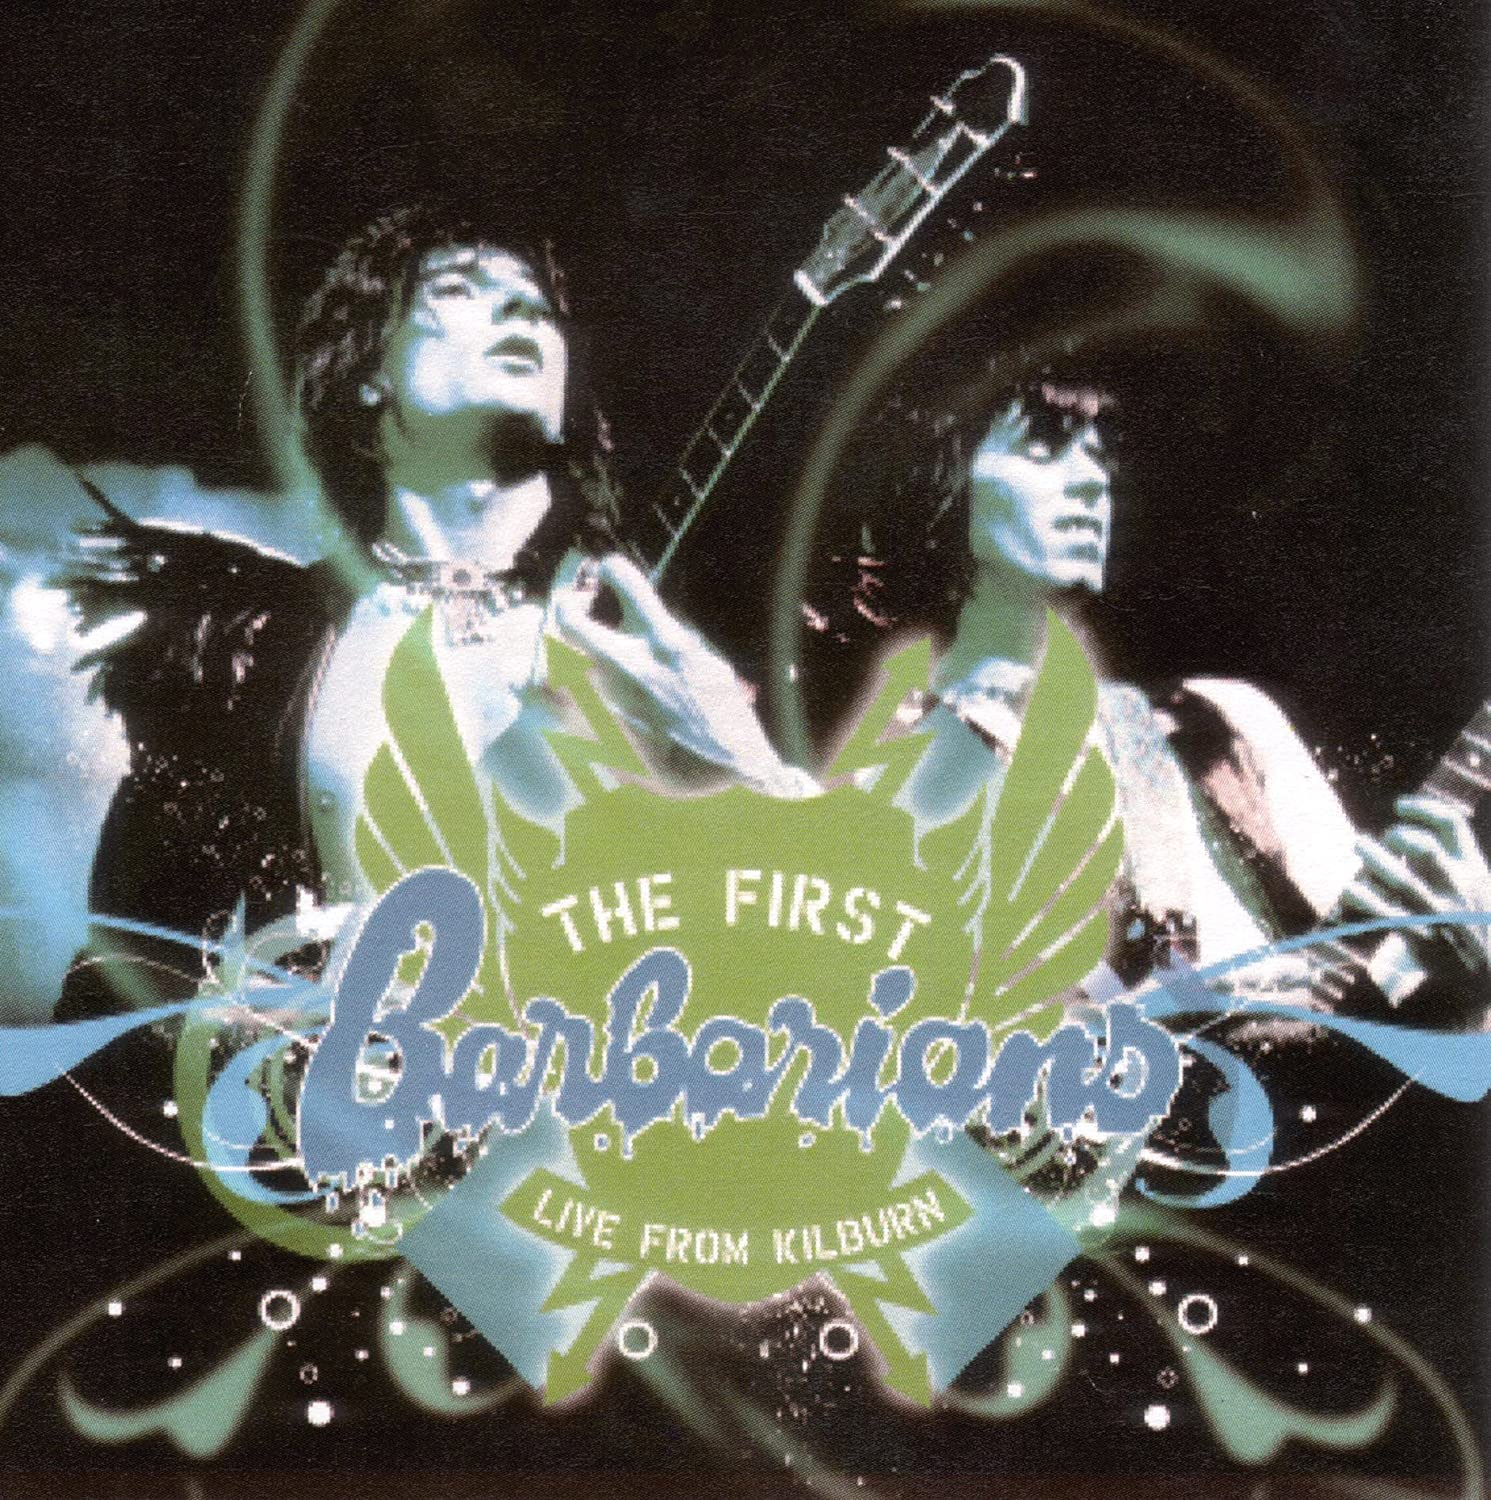 THE FIRST BARBARIANS - LIVE FROM KILBURN: Ronnie Wood: Amazon.it ...